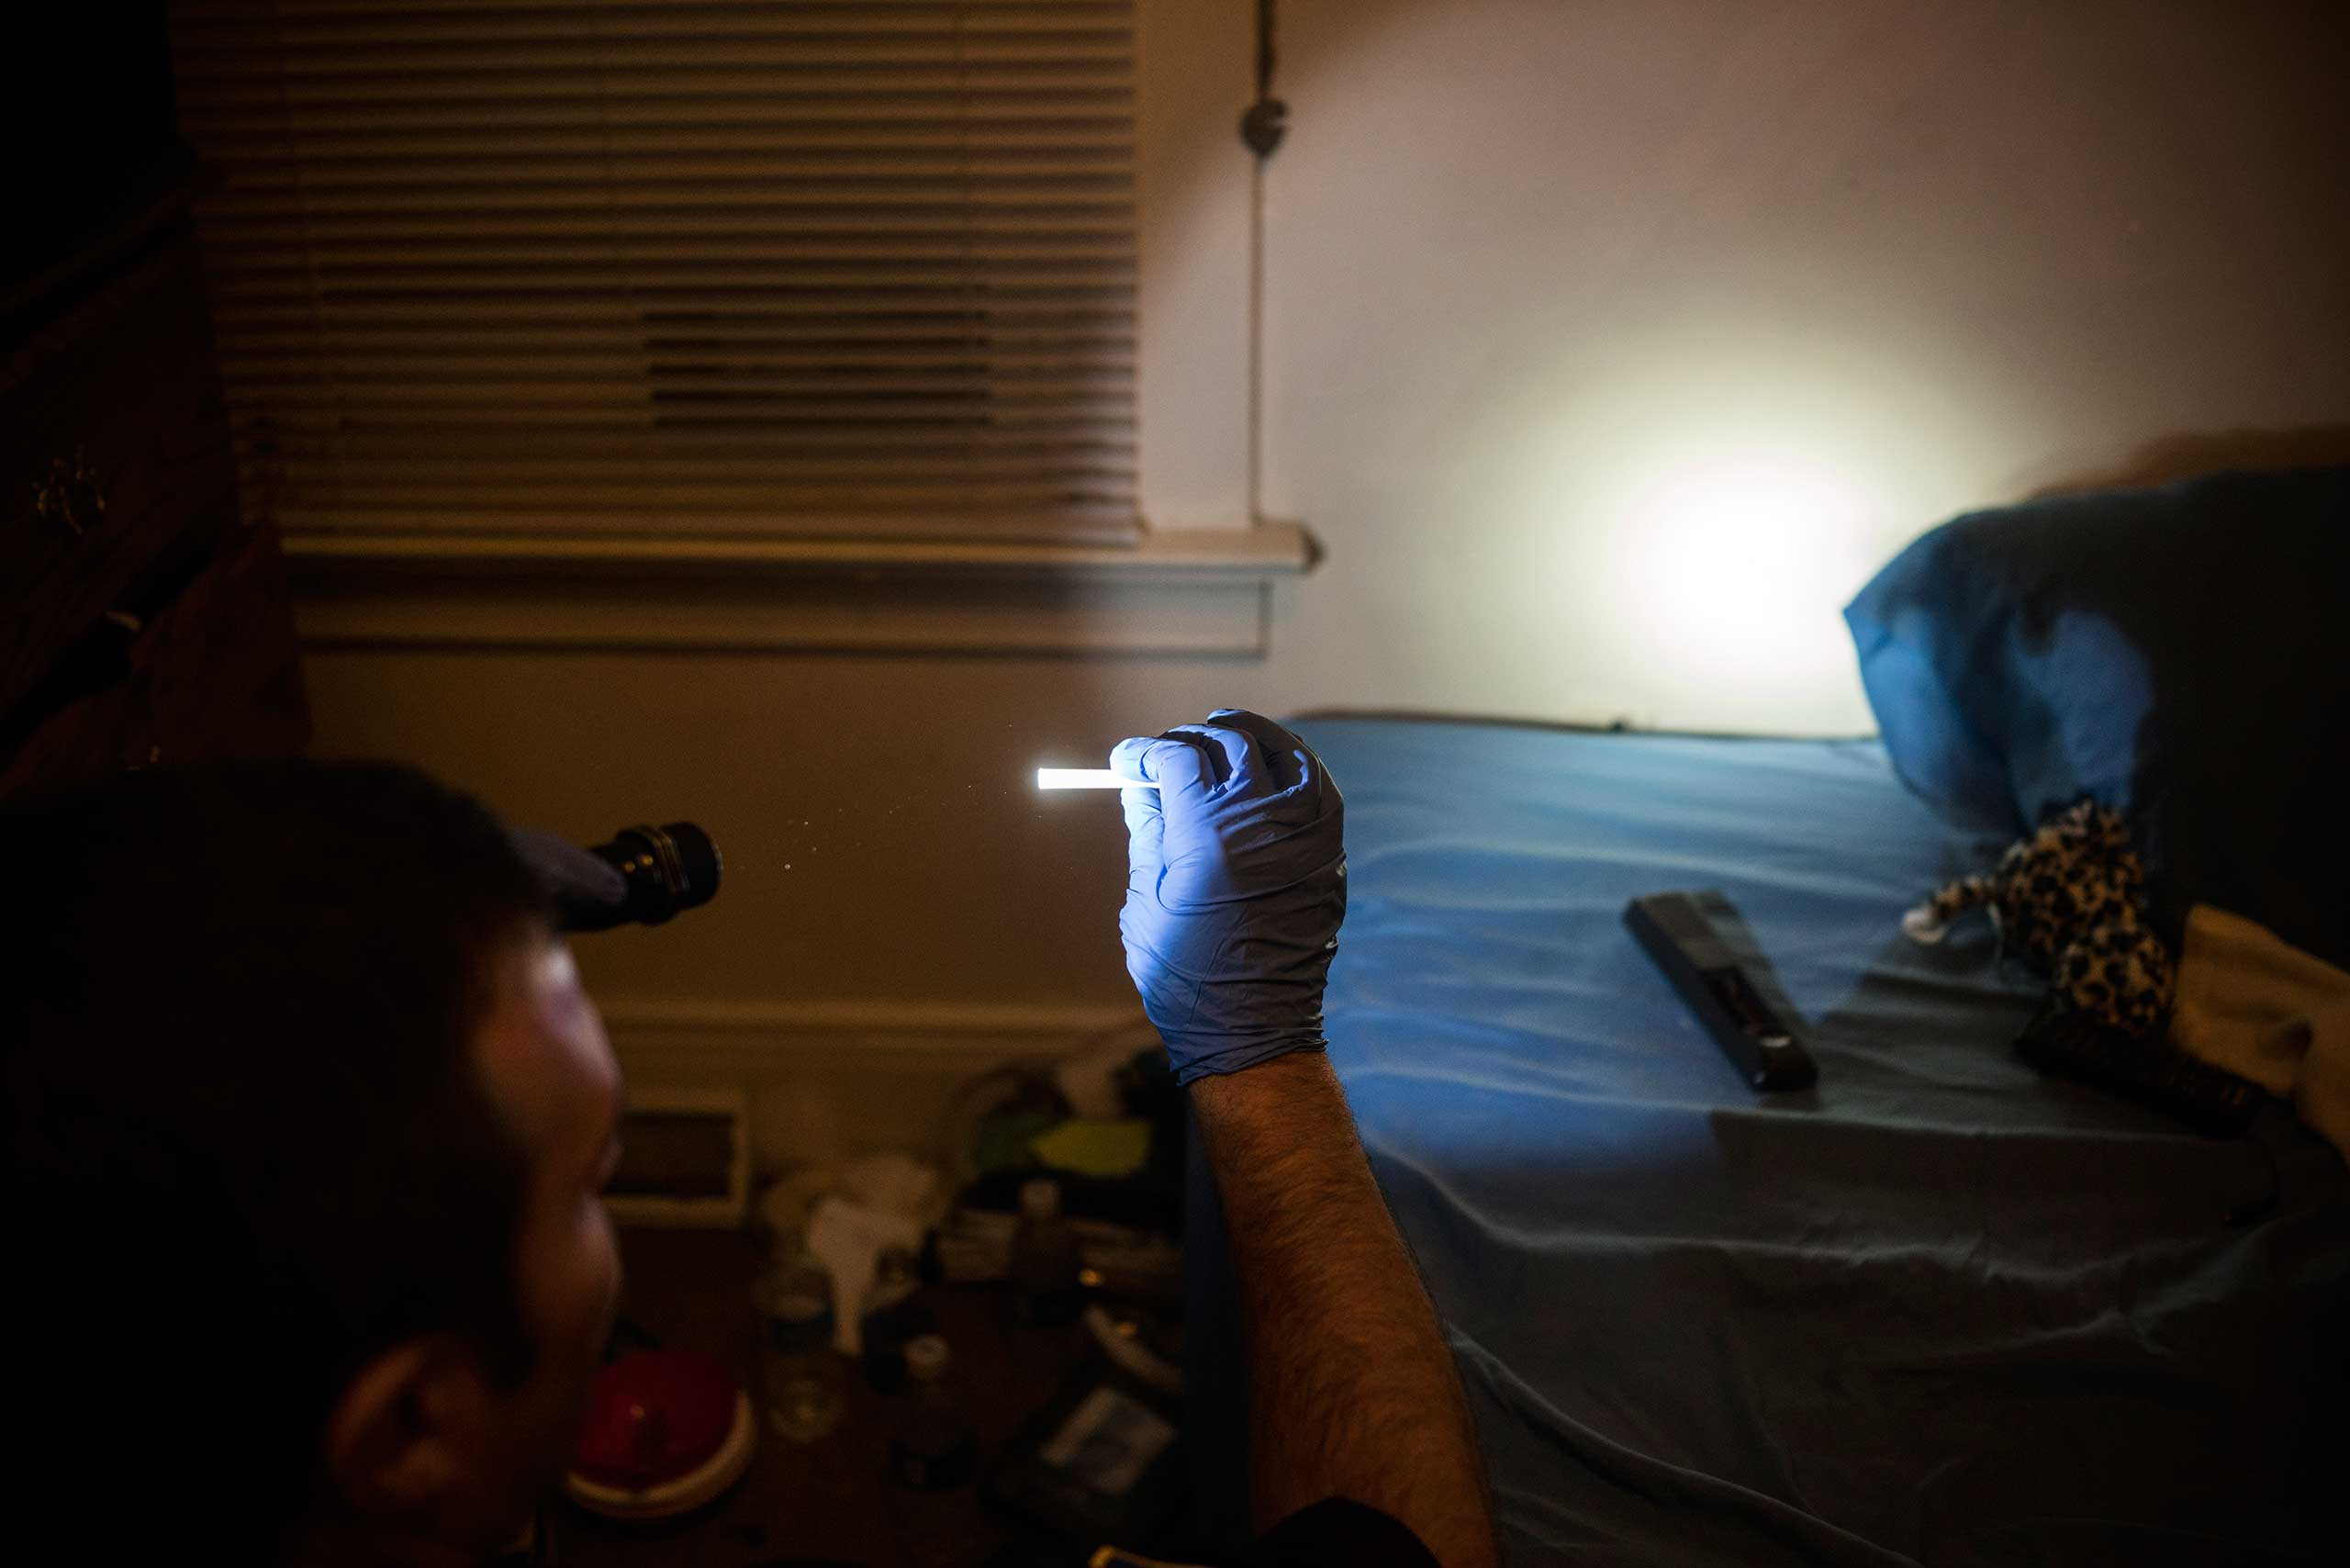 """A police officer holds up drug paraphernalia after searching through a teenager's room in East Liverpool, Ohio, on Oct. 8, 2016. The teen's mother called the police after her daughter vandalized her car and invited the officer into her home to search her daughter's room and take out whatever drugs he found. She said """"Im tired of her using and I don't know what to do about it. Just take it all."""""""